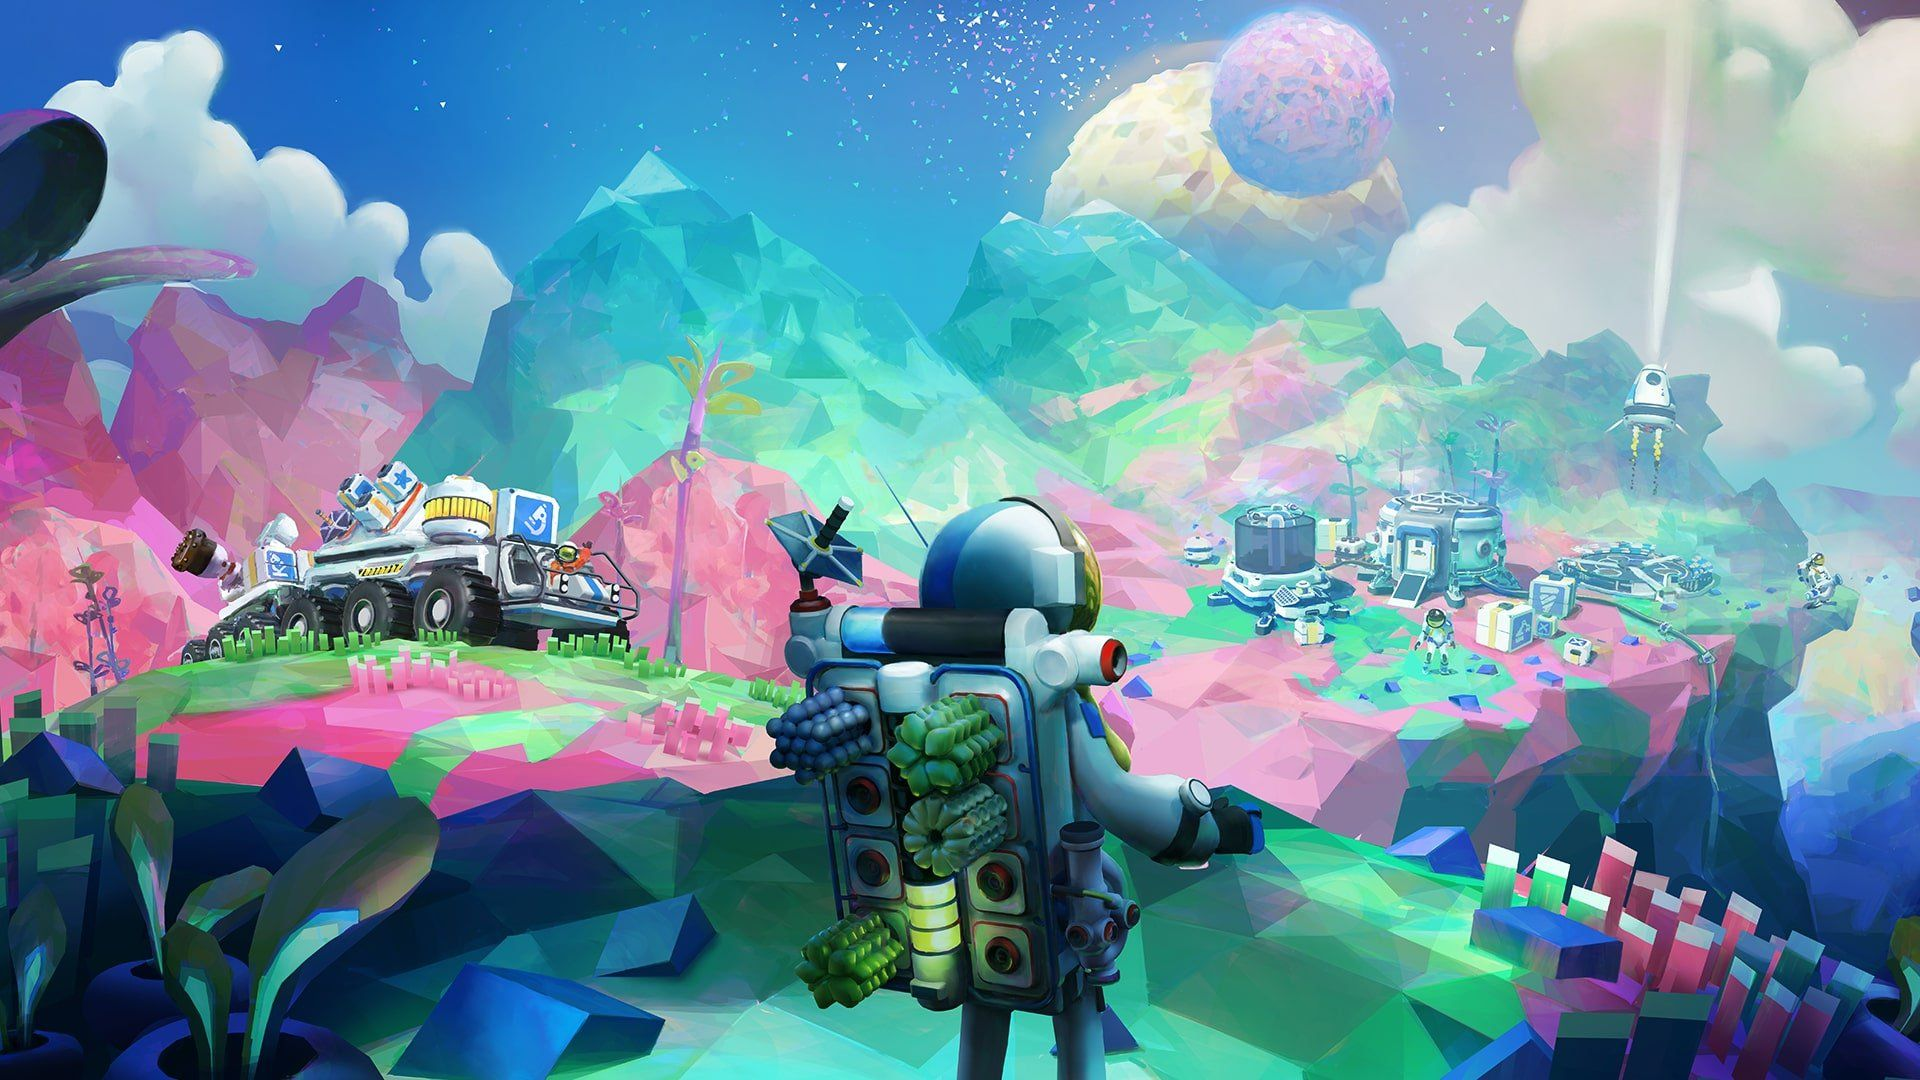 Astroneer Playstation 4 Version Coming Later This Year Systems Art Game Art Playstation